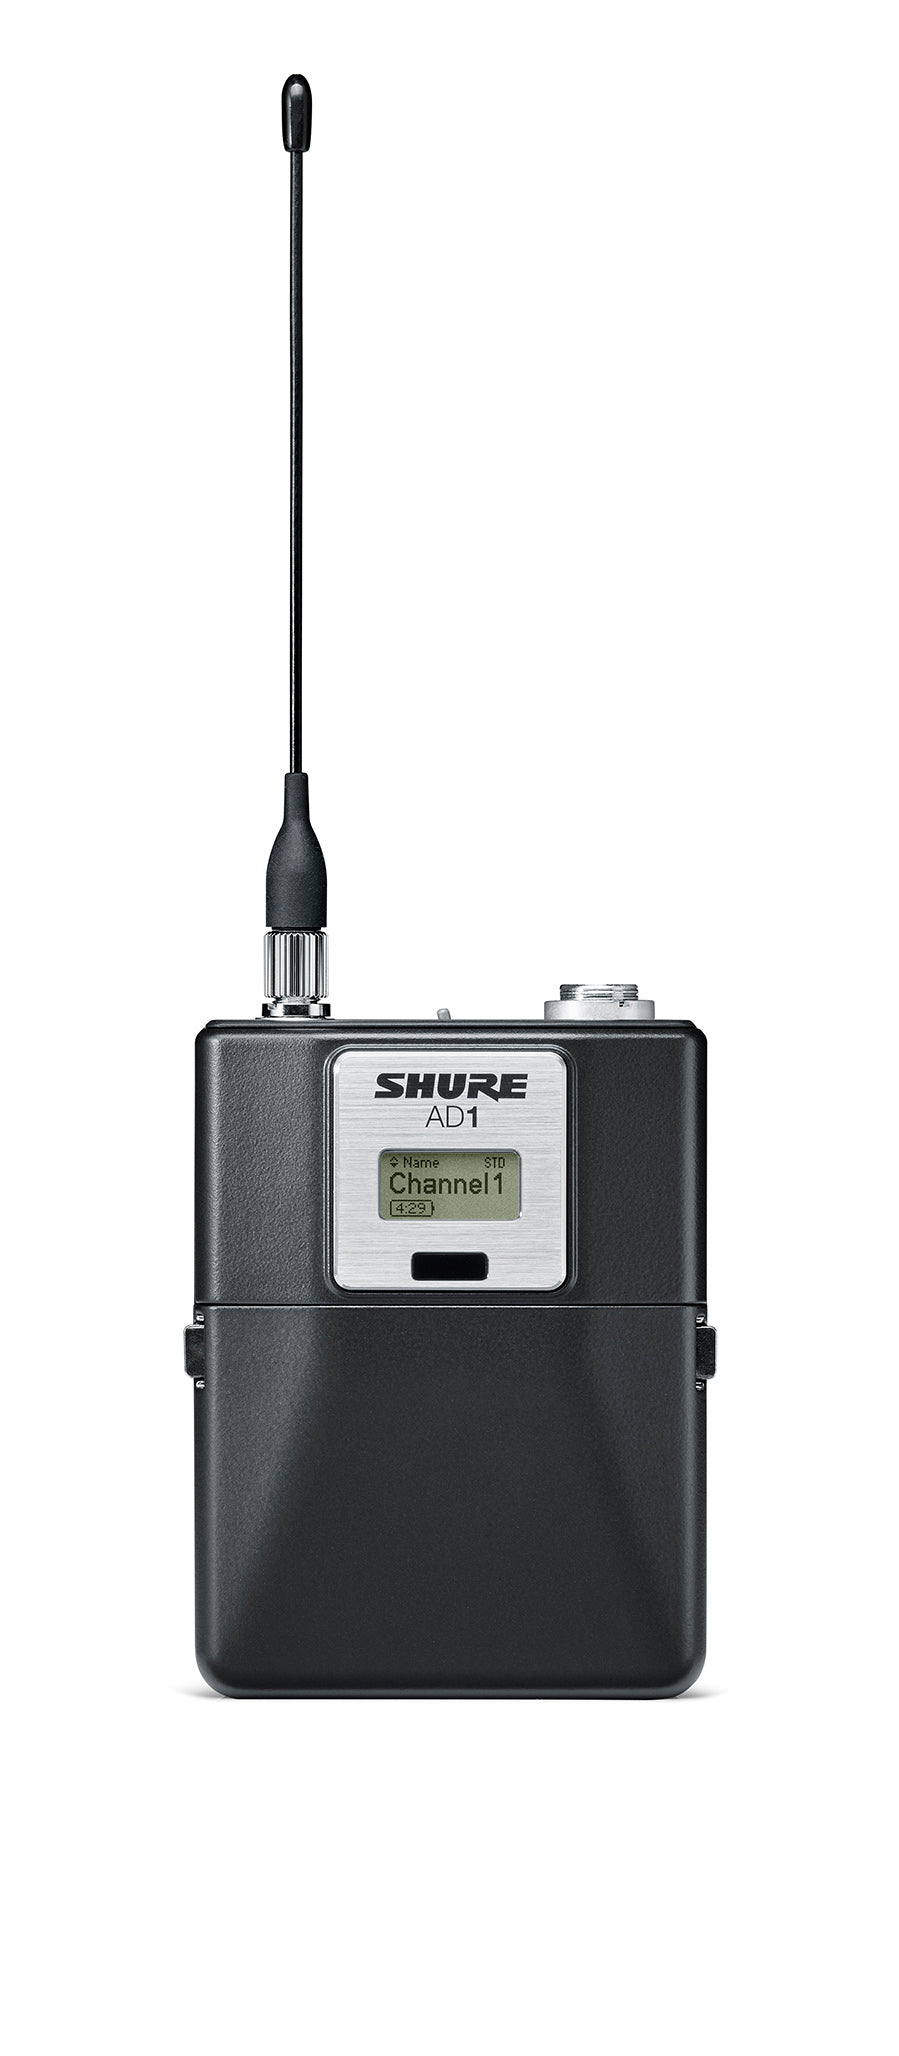 Shure AD1 Axient Digital Bodypack Wireless Transmitter - TA4 Connector